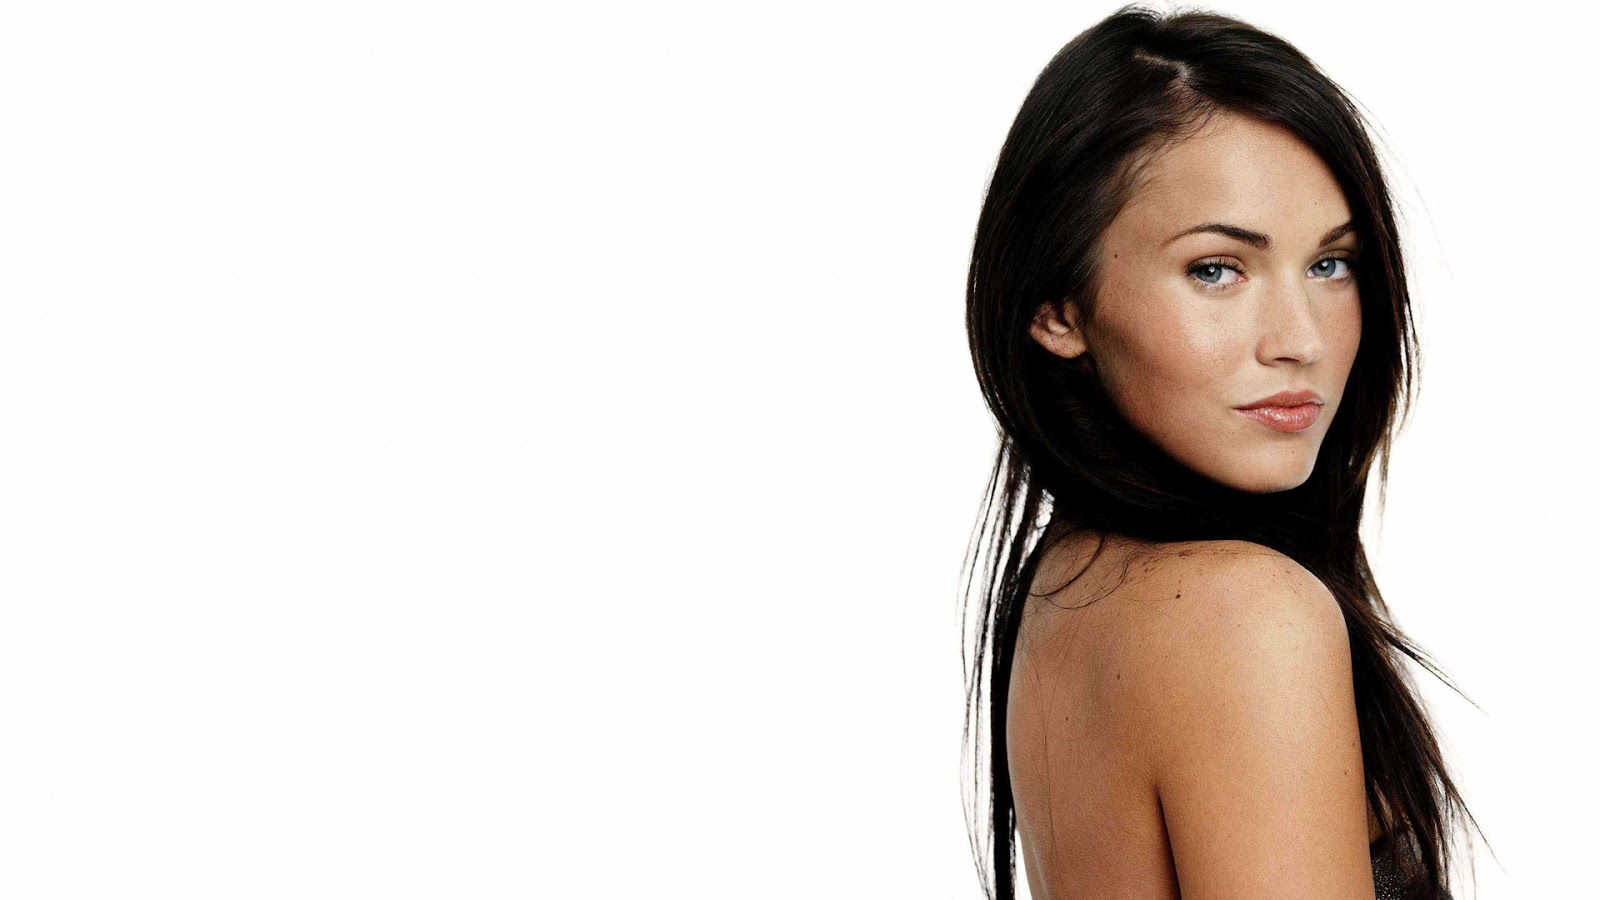 wallpapers hottest and Sexy Megan Fox Full HD Wallpapers 1080p 1600x900